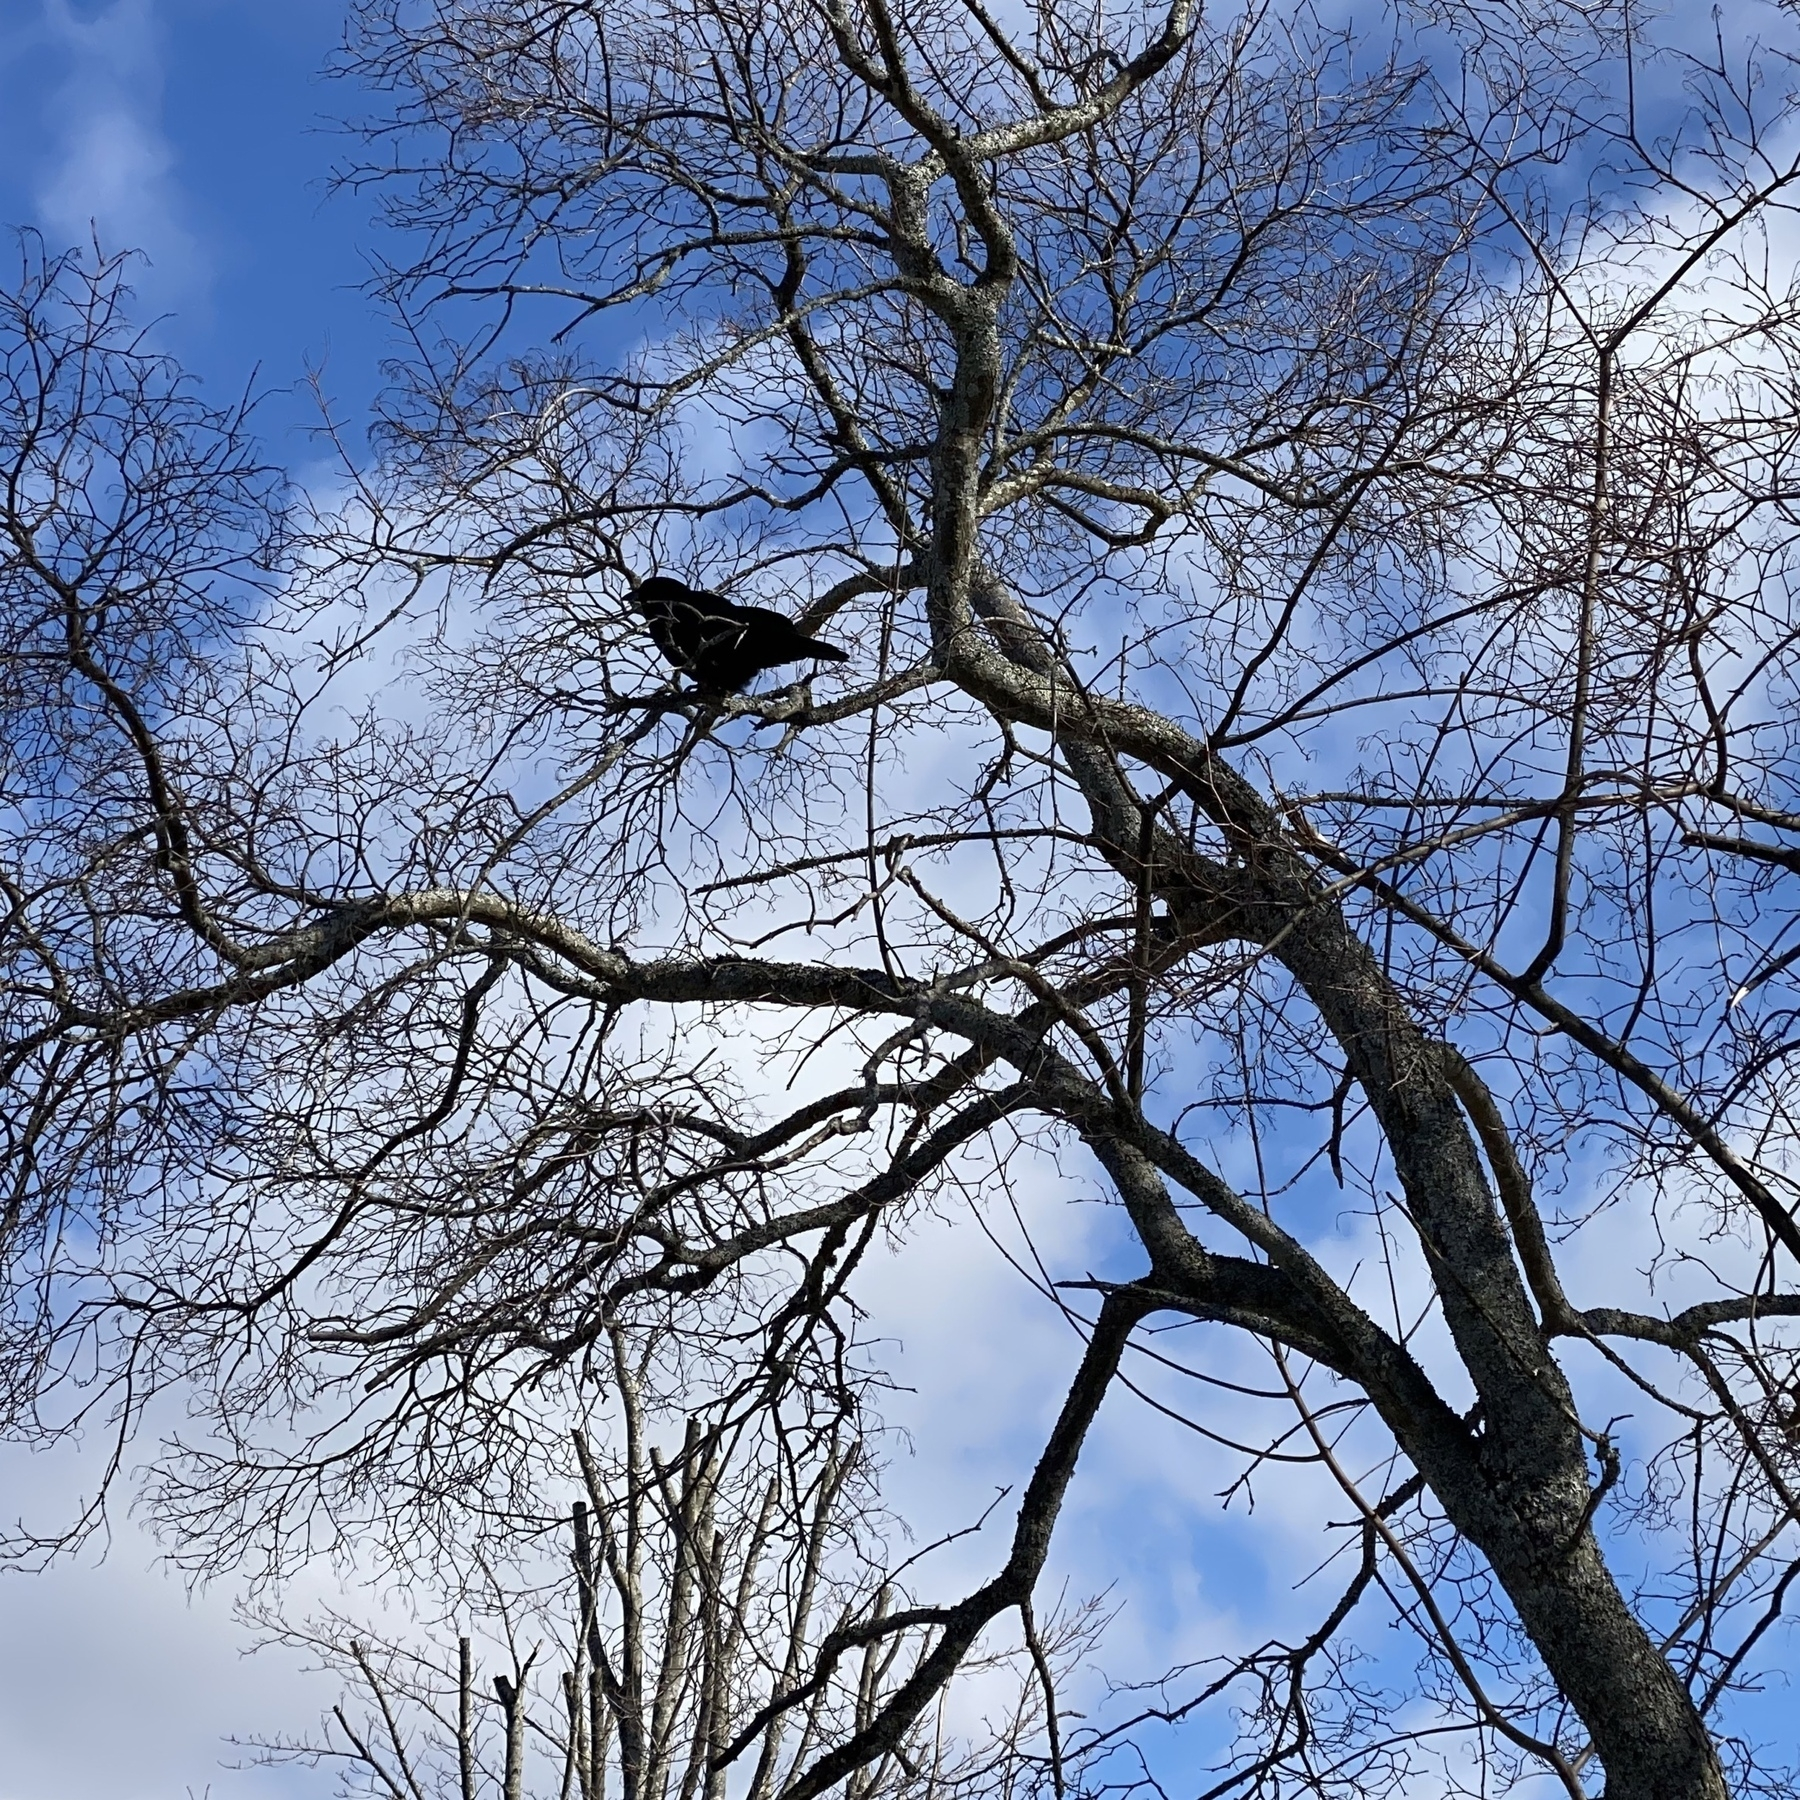 Crow in branches of a tree.